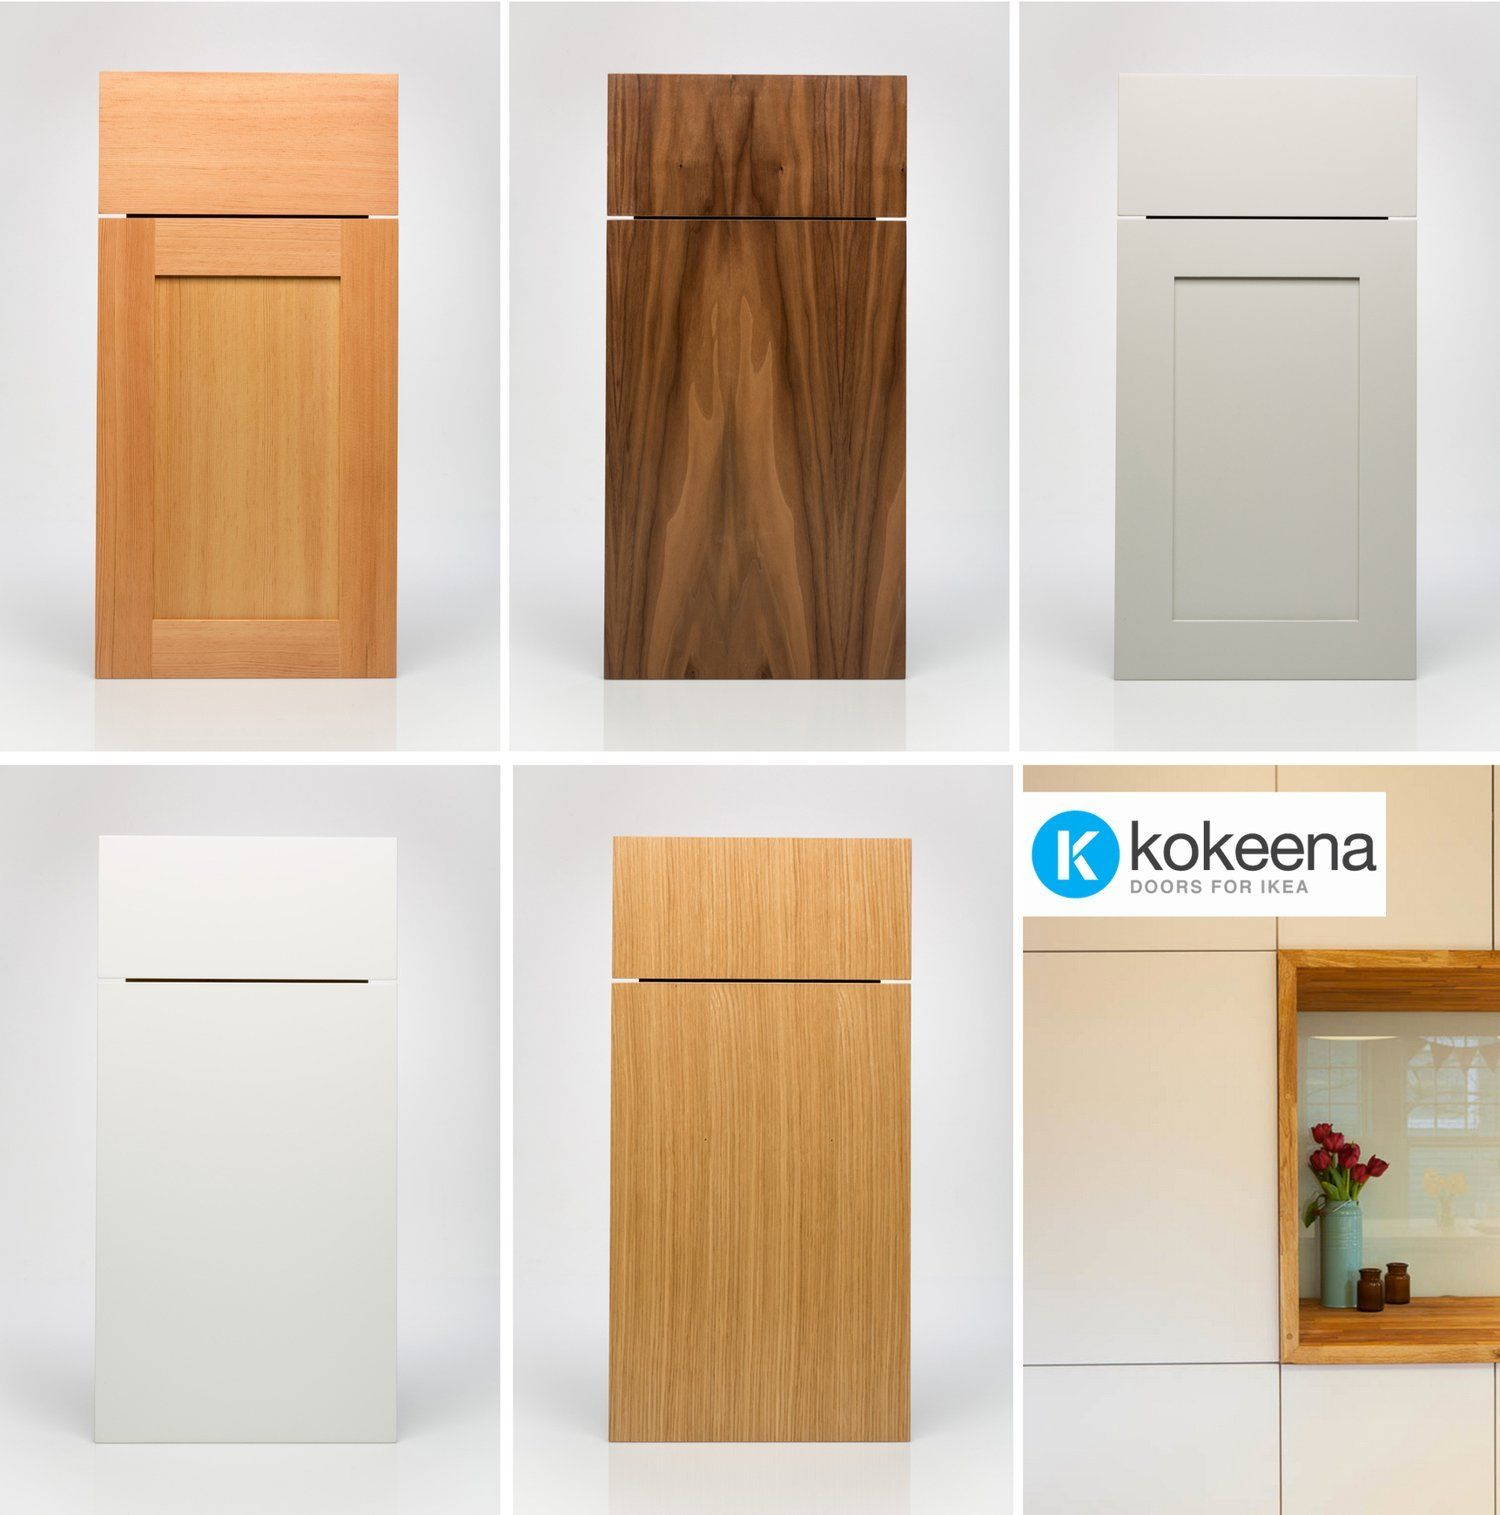 Kokeena real wood ready made cabinet doors for ikea for Akurum kitchen cabinets